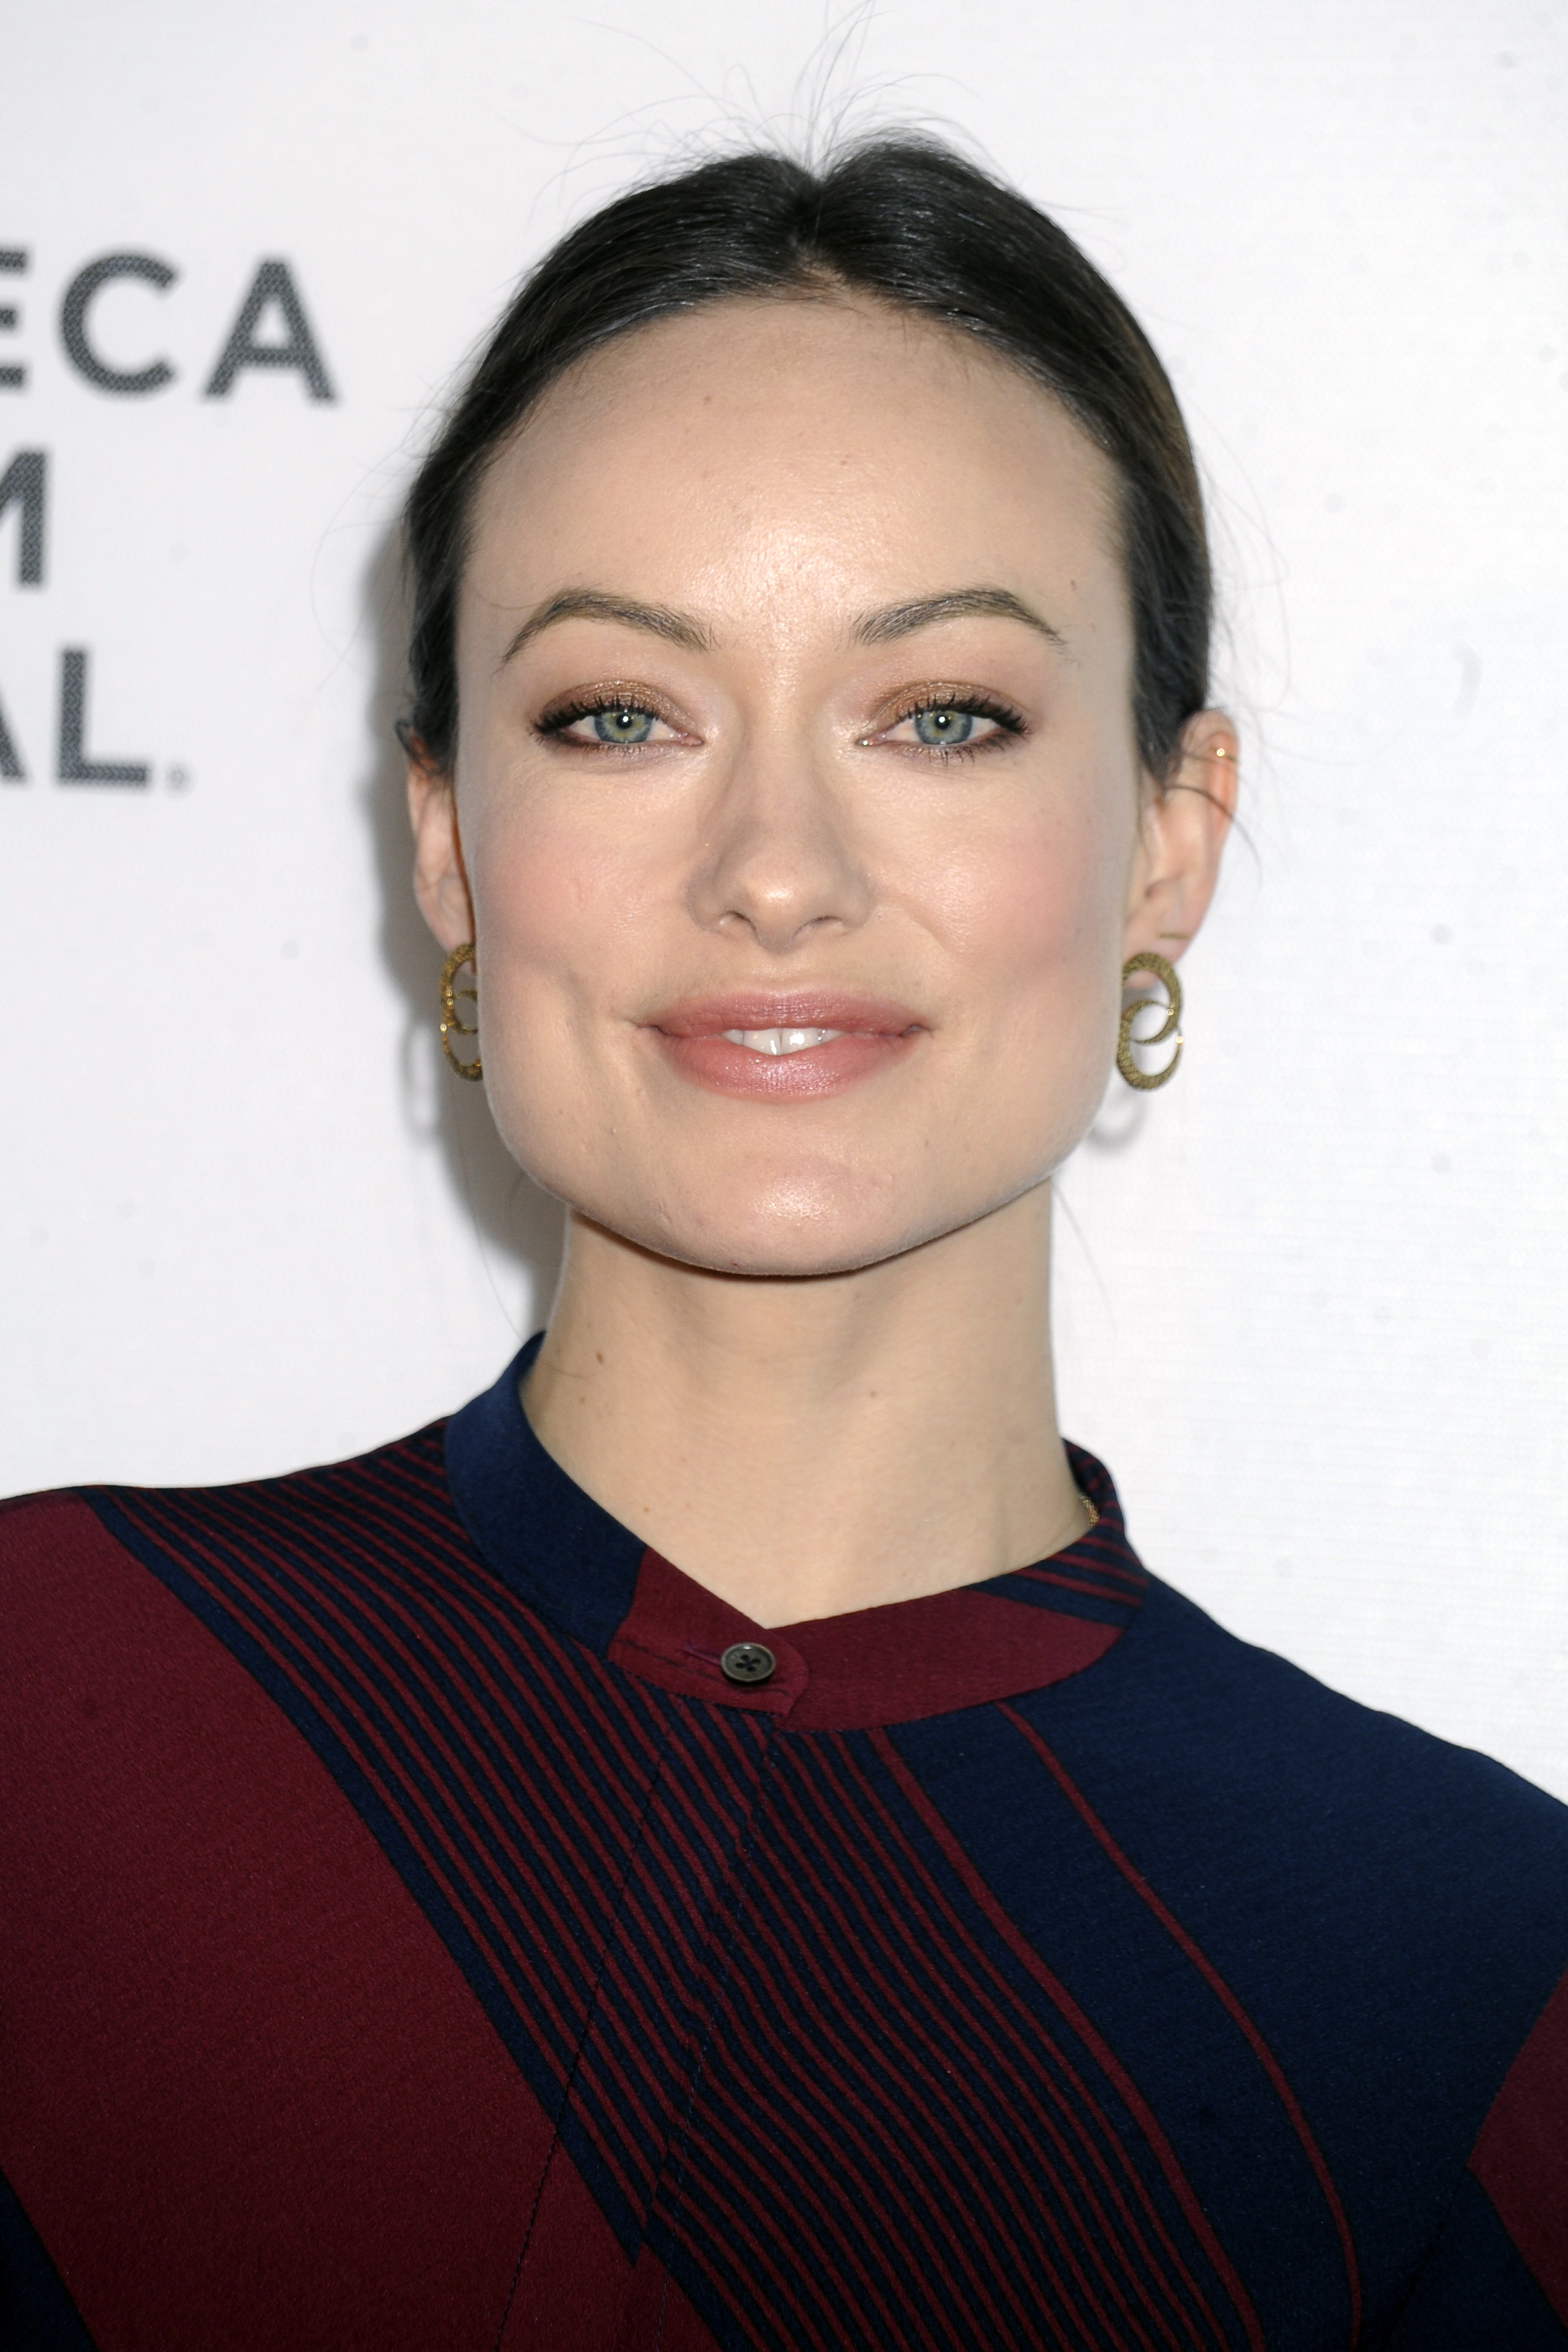 Olivia Wilde attends the Shorts Program World Pemiere of 'Body Team 12' during the 2015 Tribeca Film Festival at Regal Battery Park 11 on April 19, 2015 in New York City.